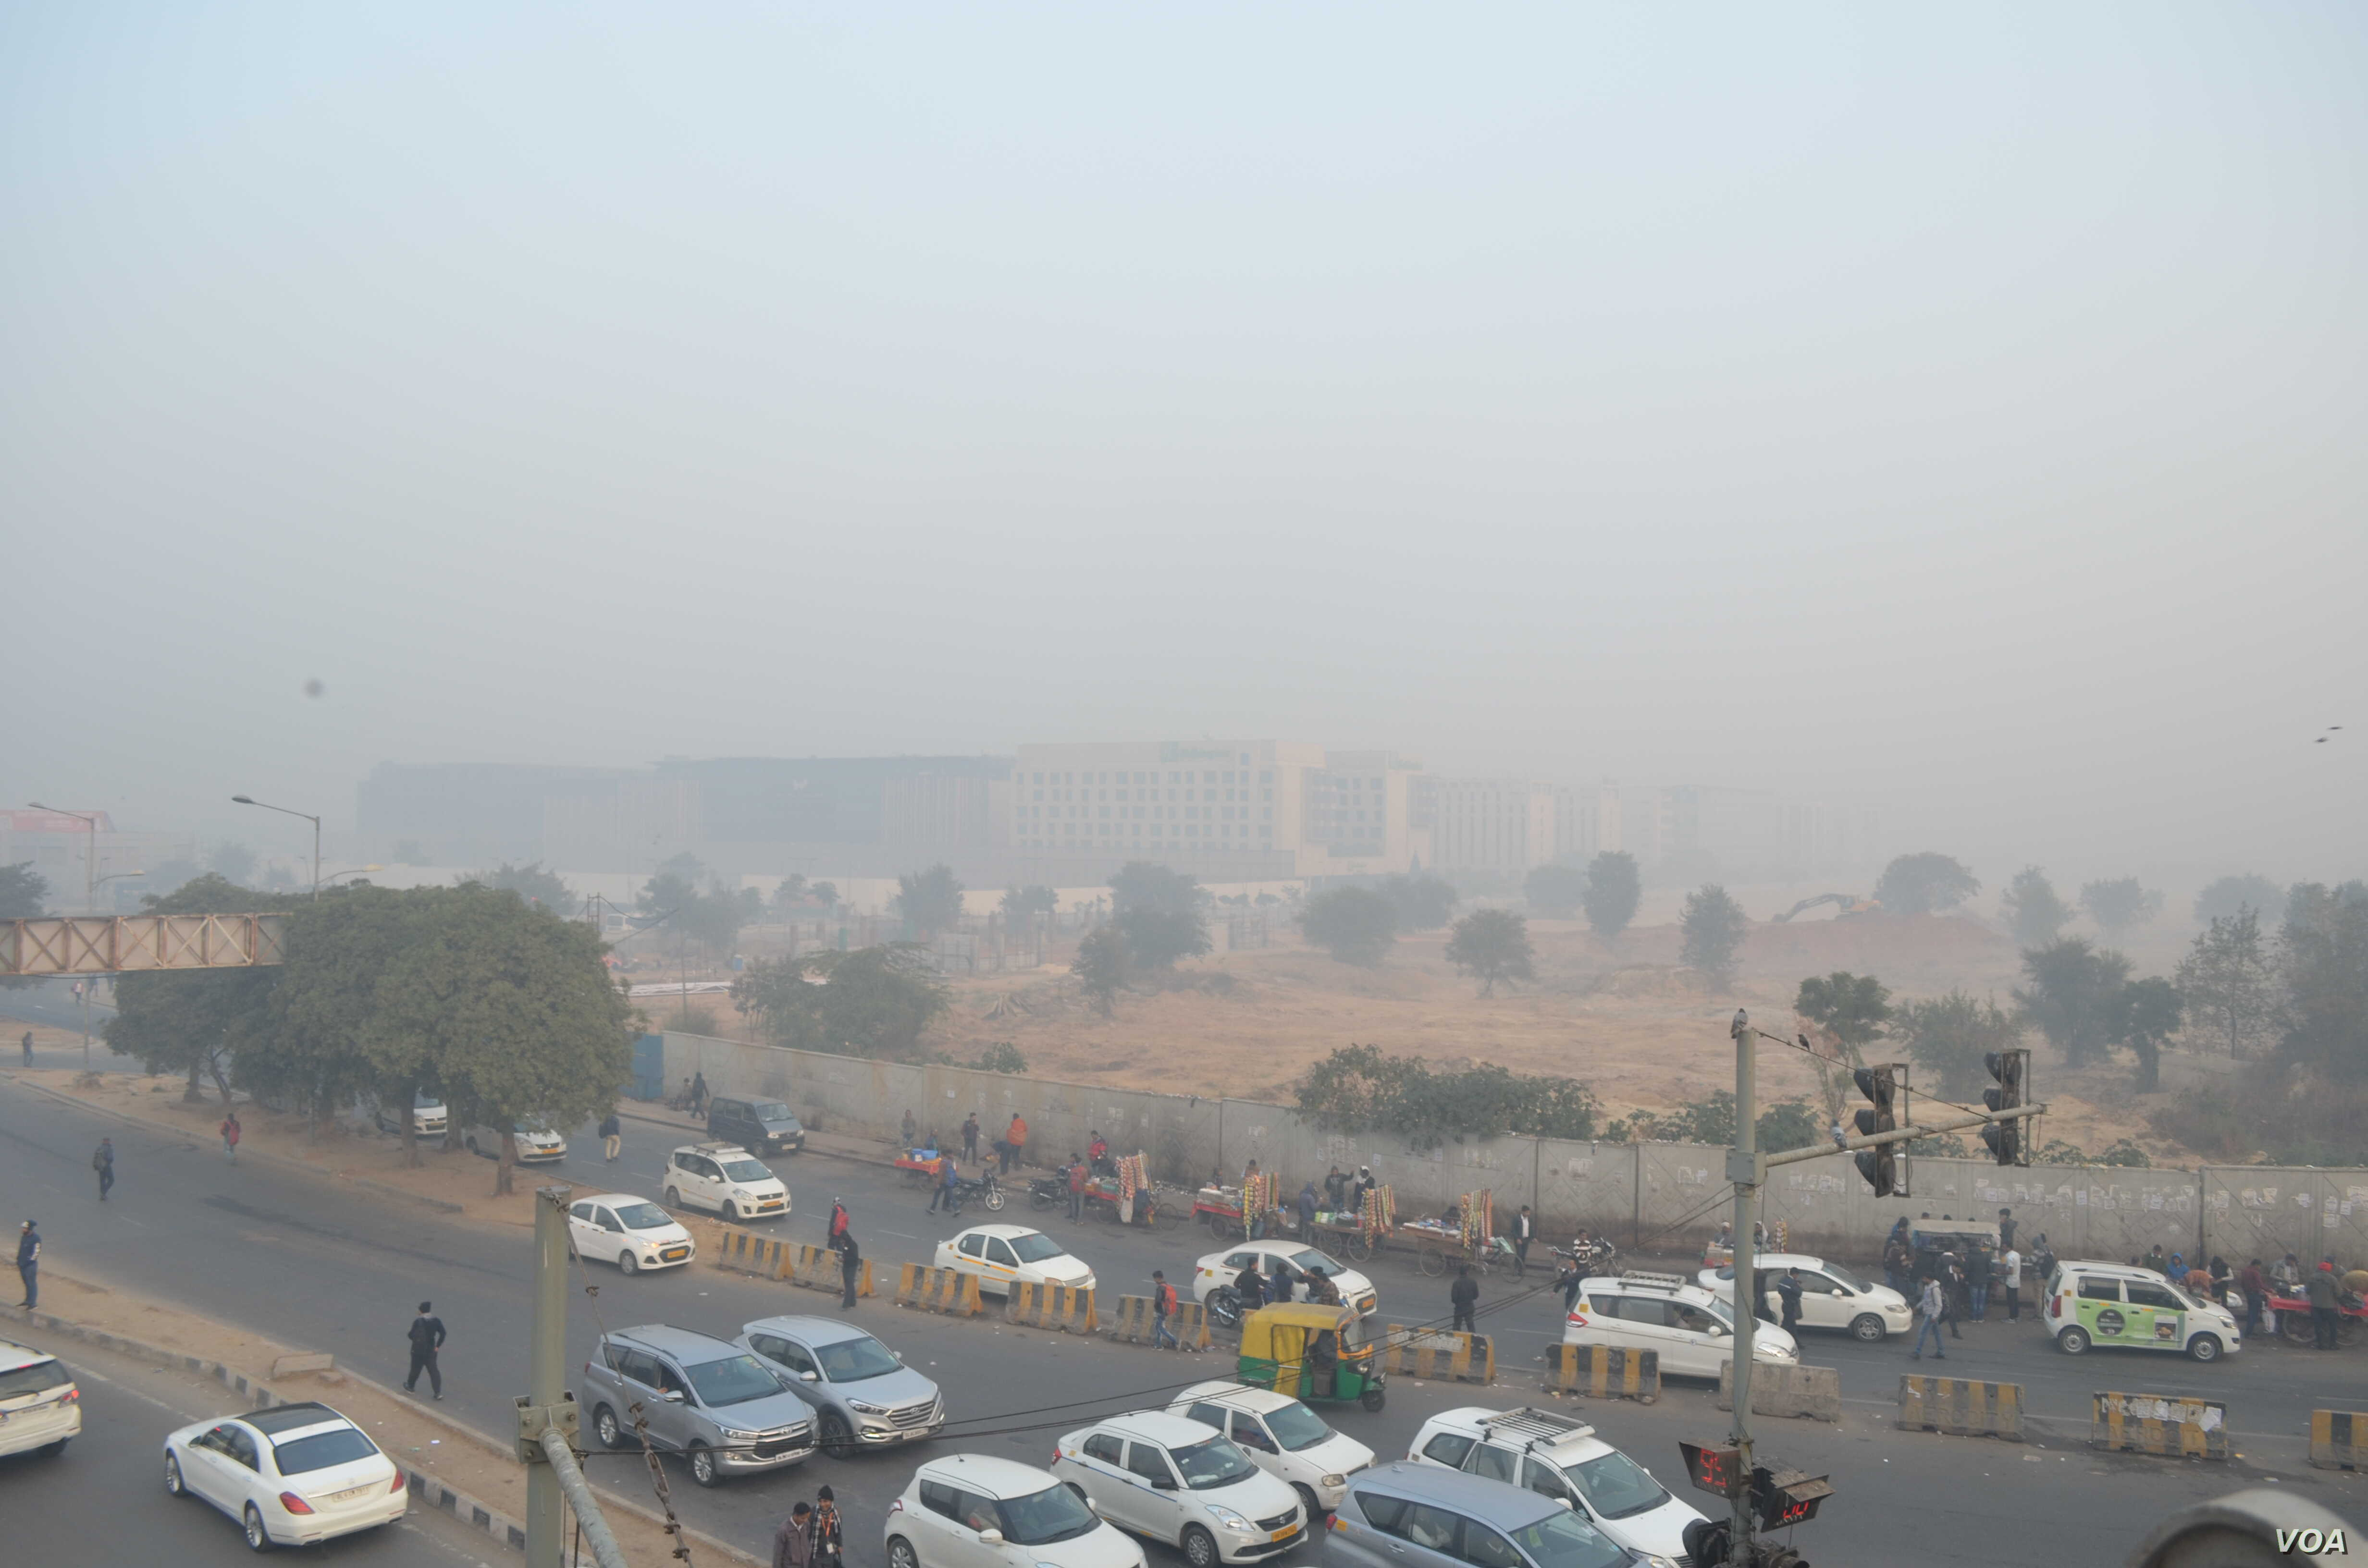 Delhi's Toxic Air Prompts Many to Quit City | Voice of